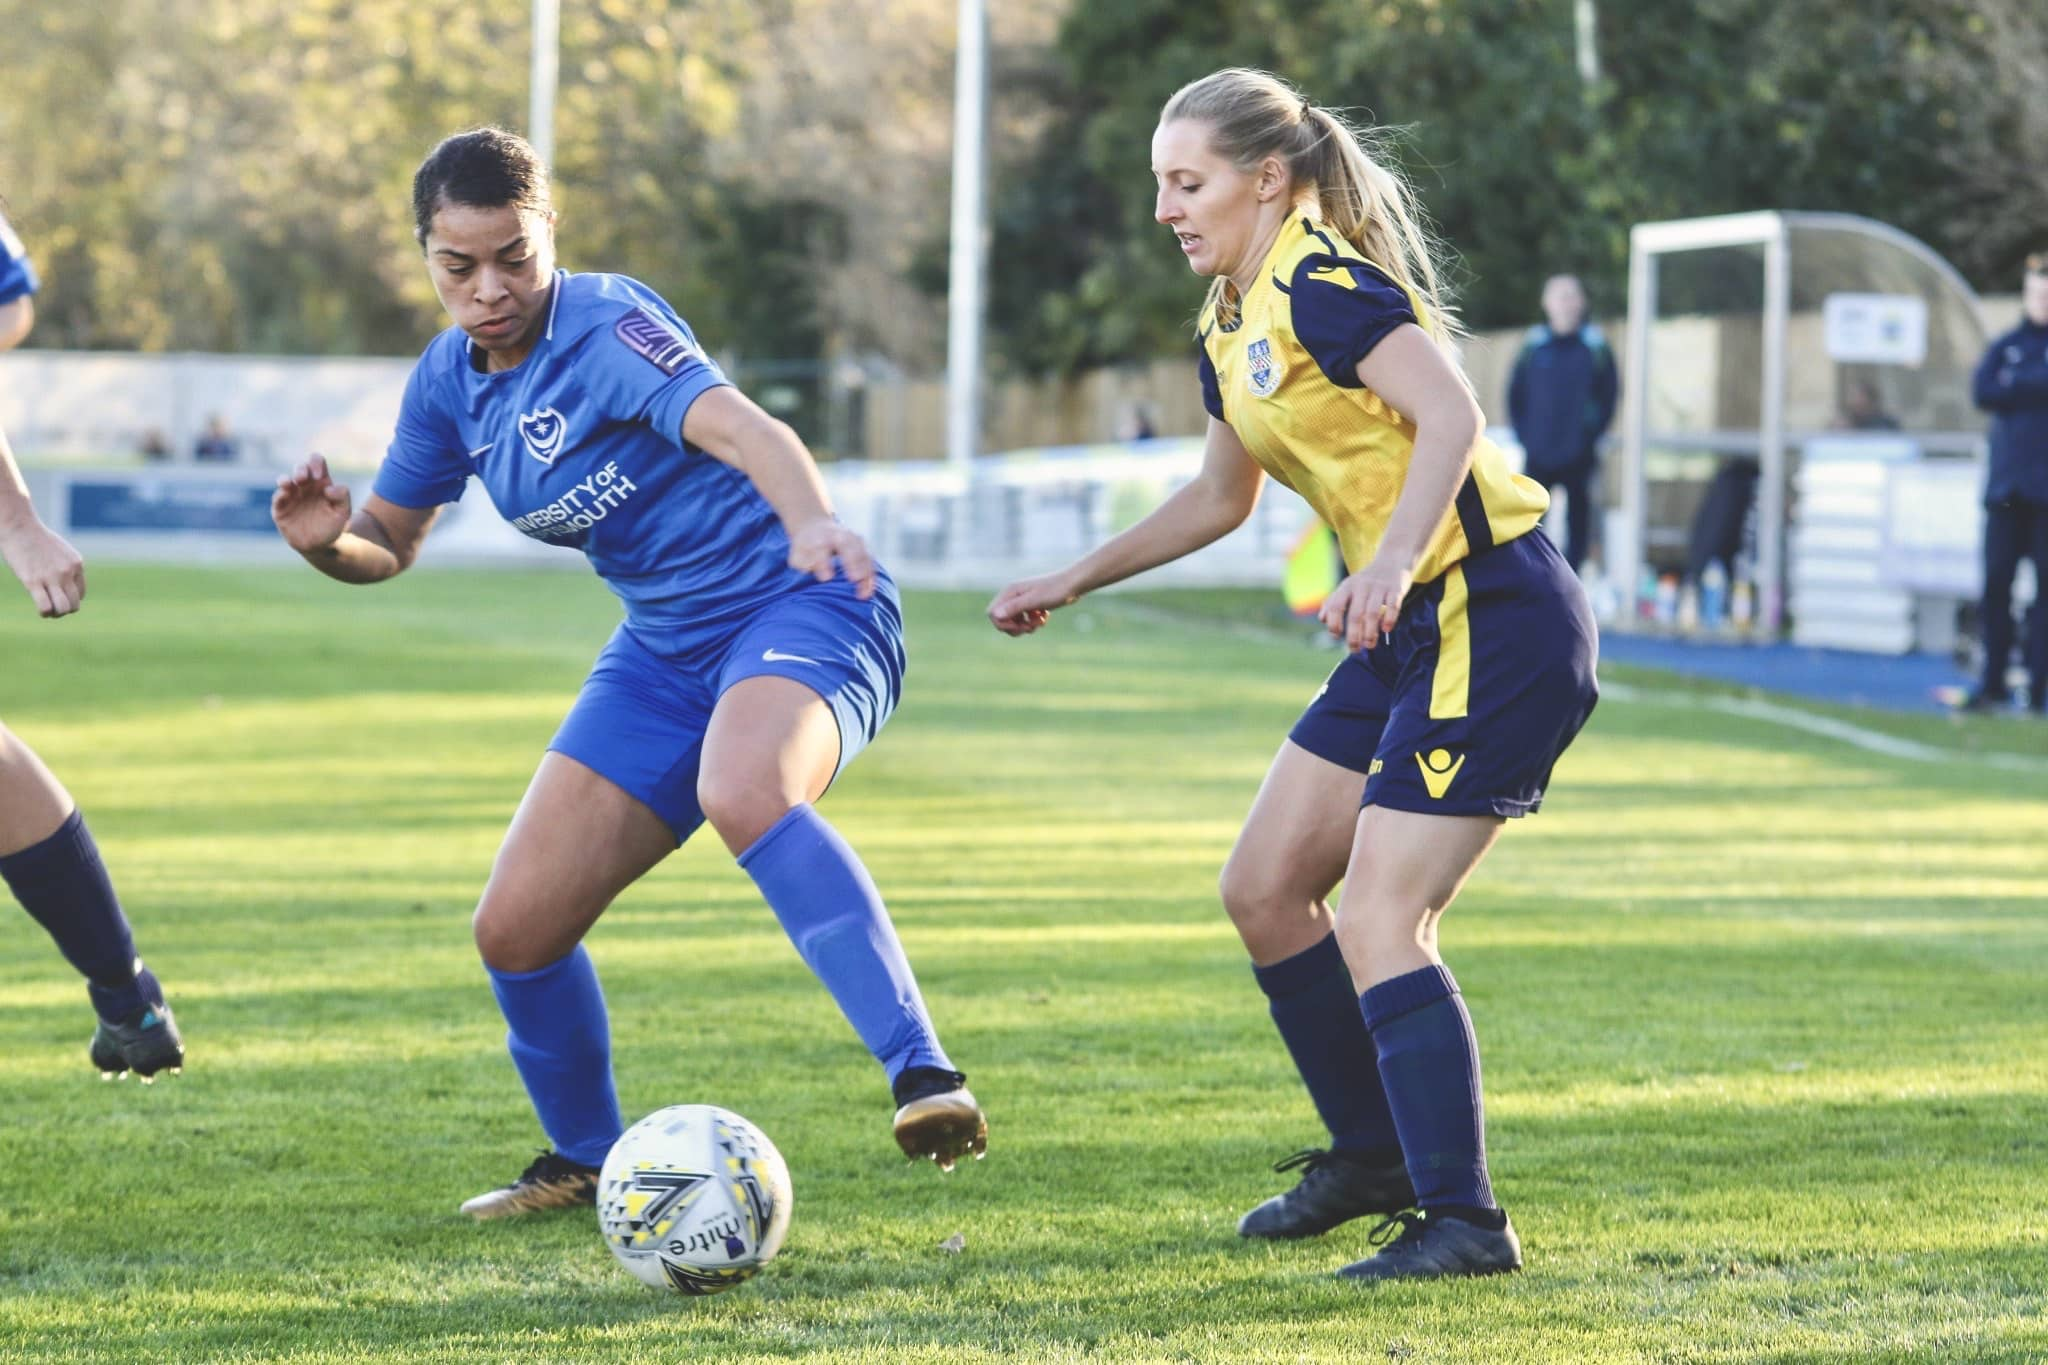 Portsmouth Womens v Eastleigh Ladies. Photo by Jordan Hampton